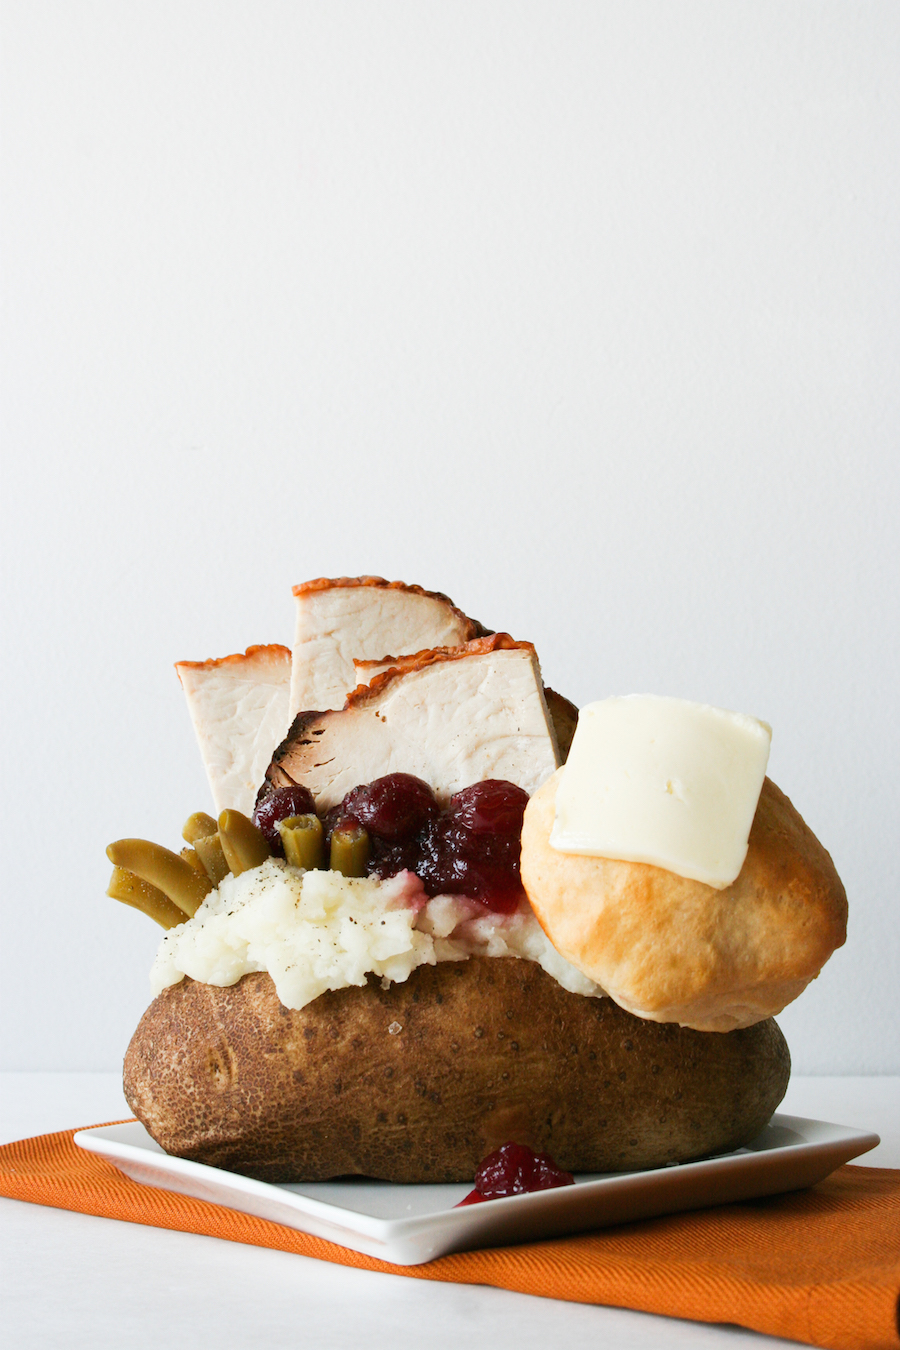 Outrageously Overstuffed Baked Potatoes // Turkey Dinner